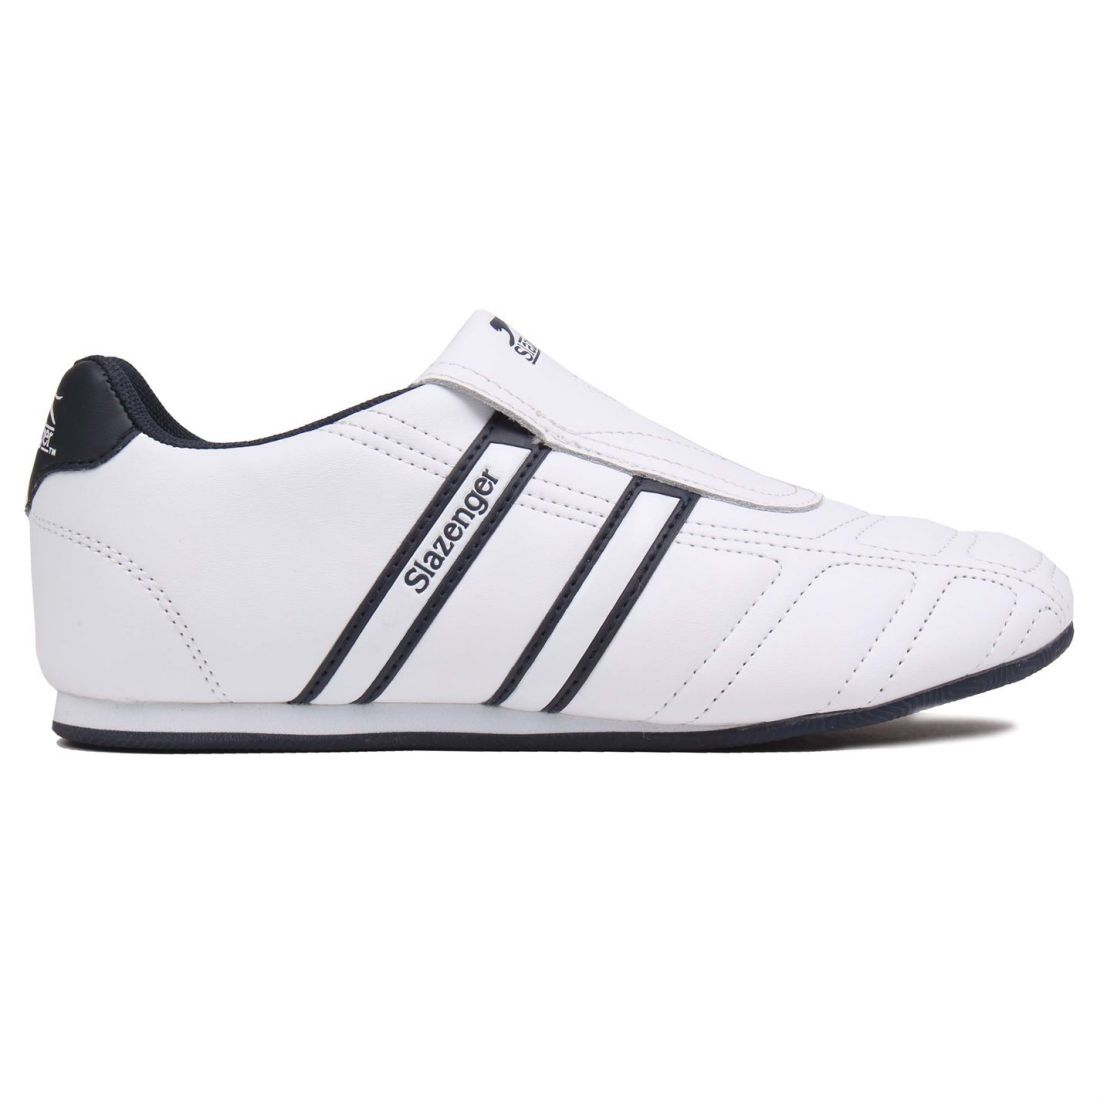 Details about Slazenger Gents Mens Warrior Sneakers Trainers Slip On  Leather Sports Shoes